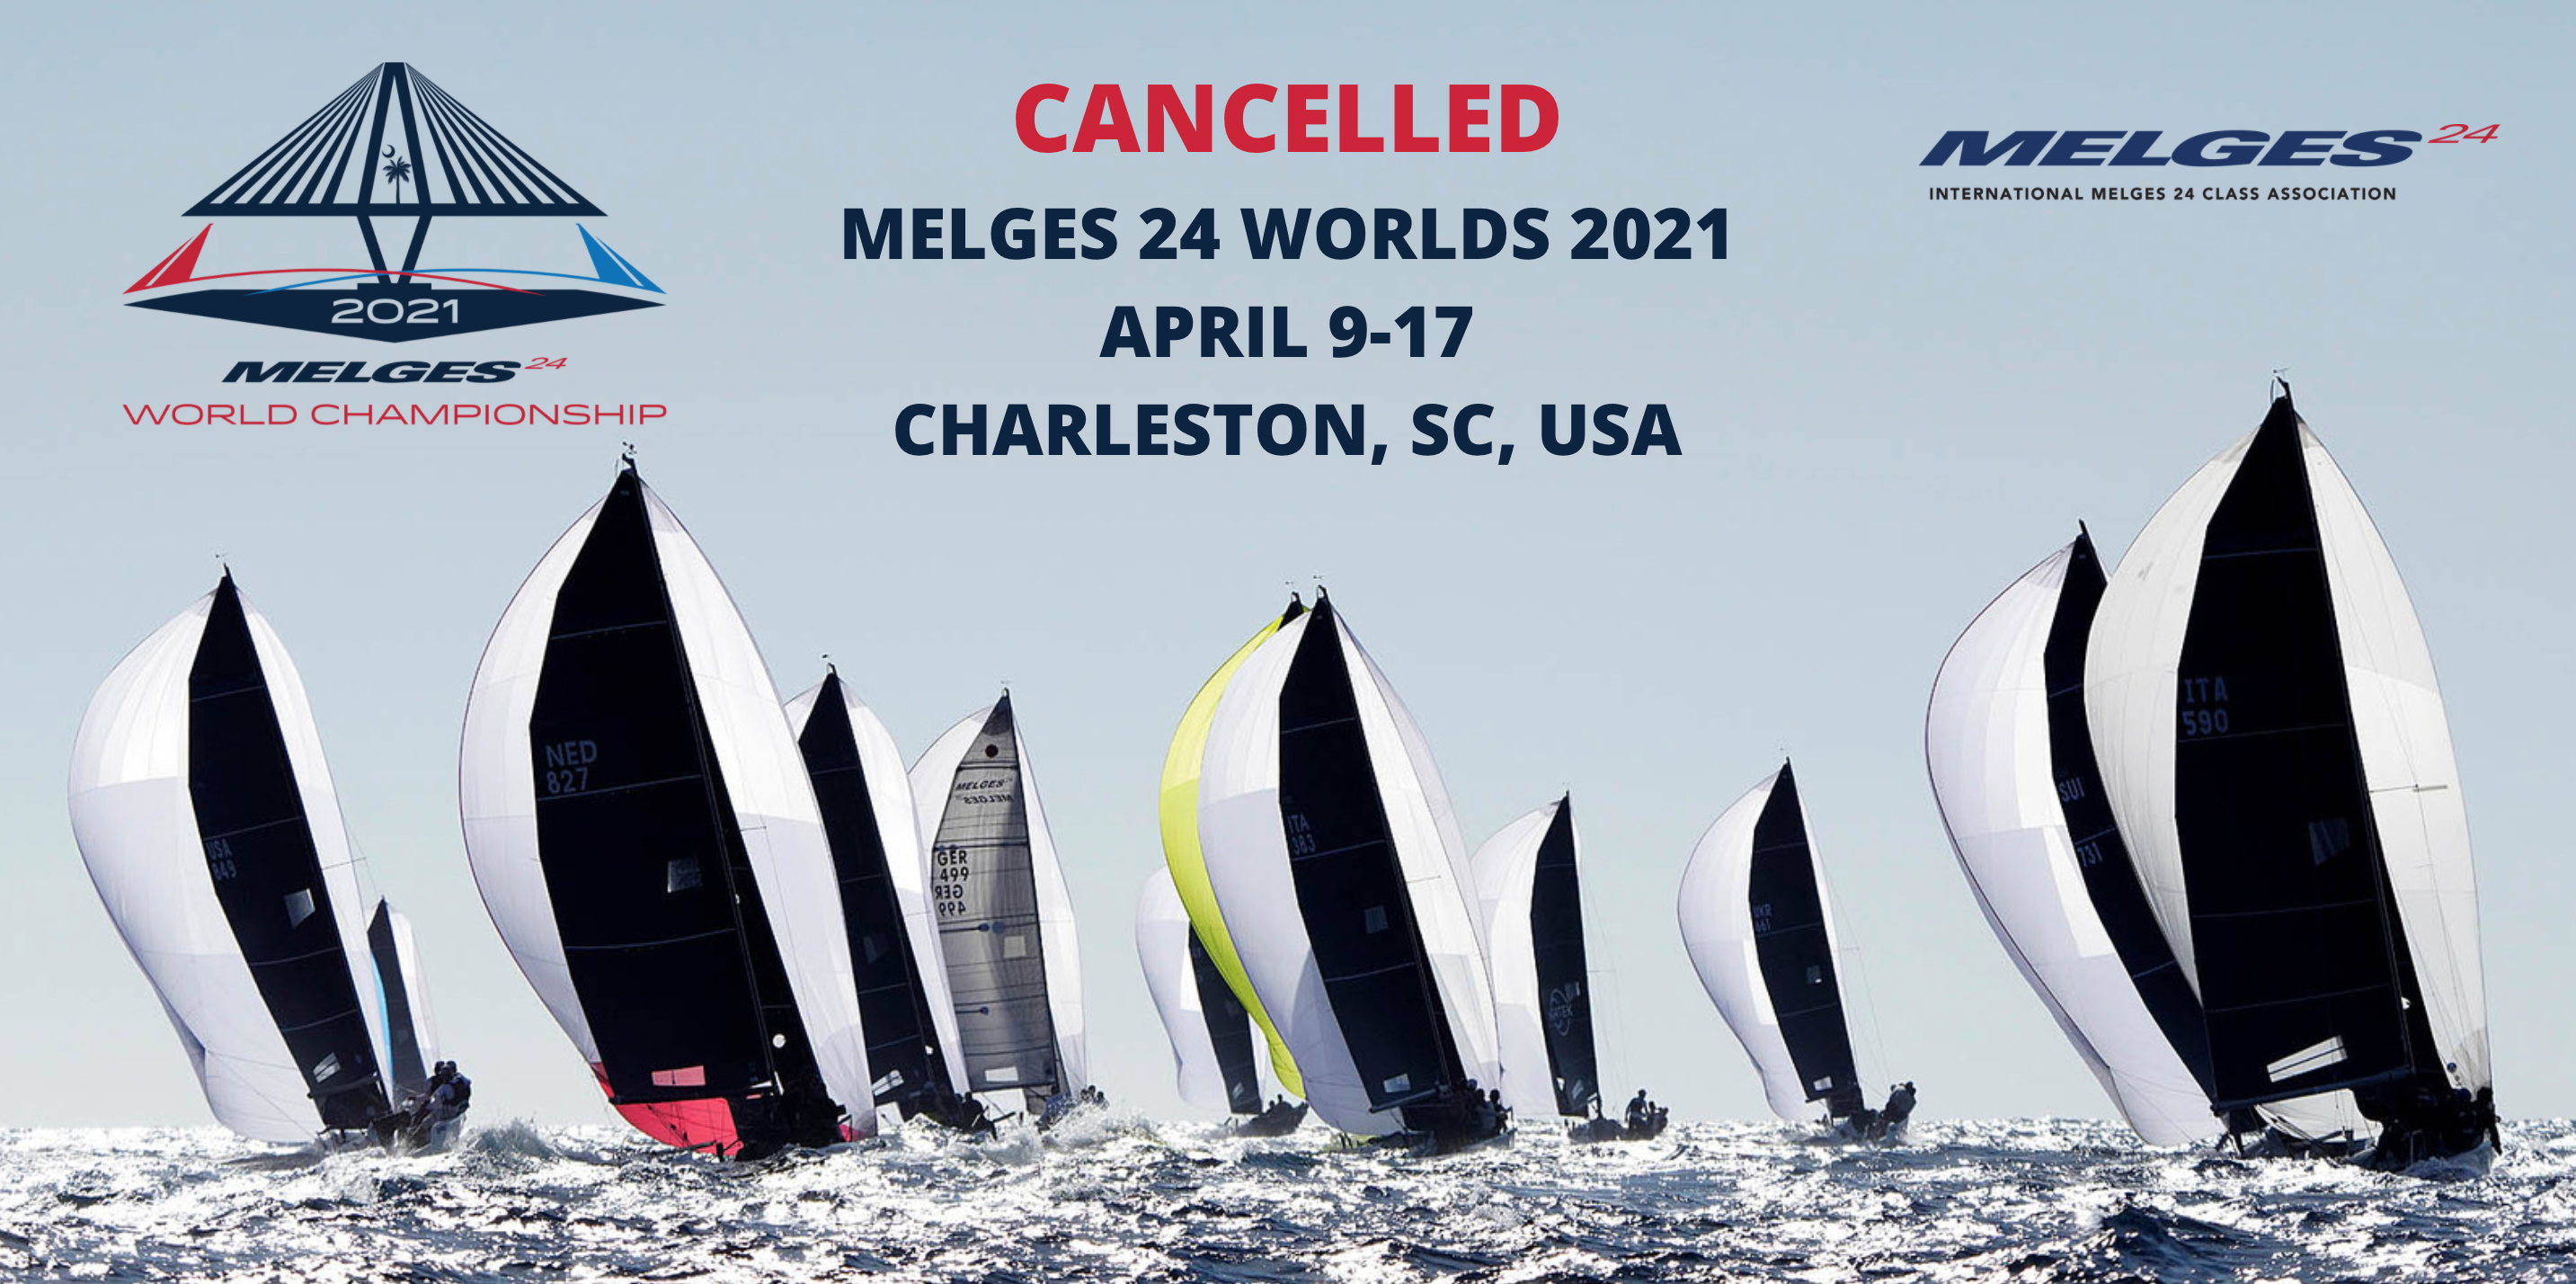 Cancellation of the Melges 24 Worlds 2021